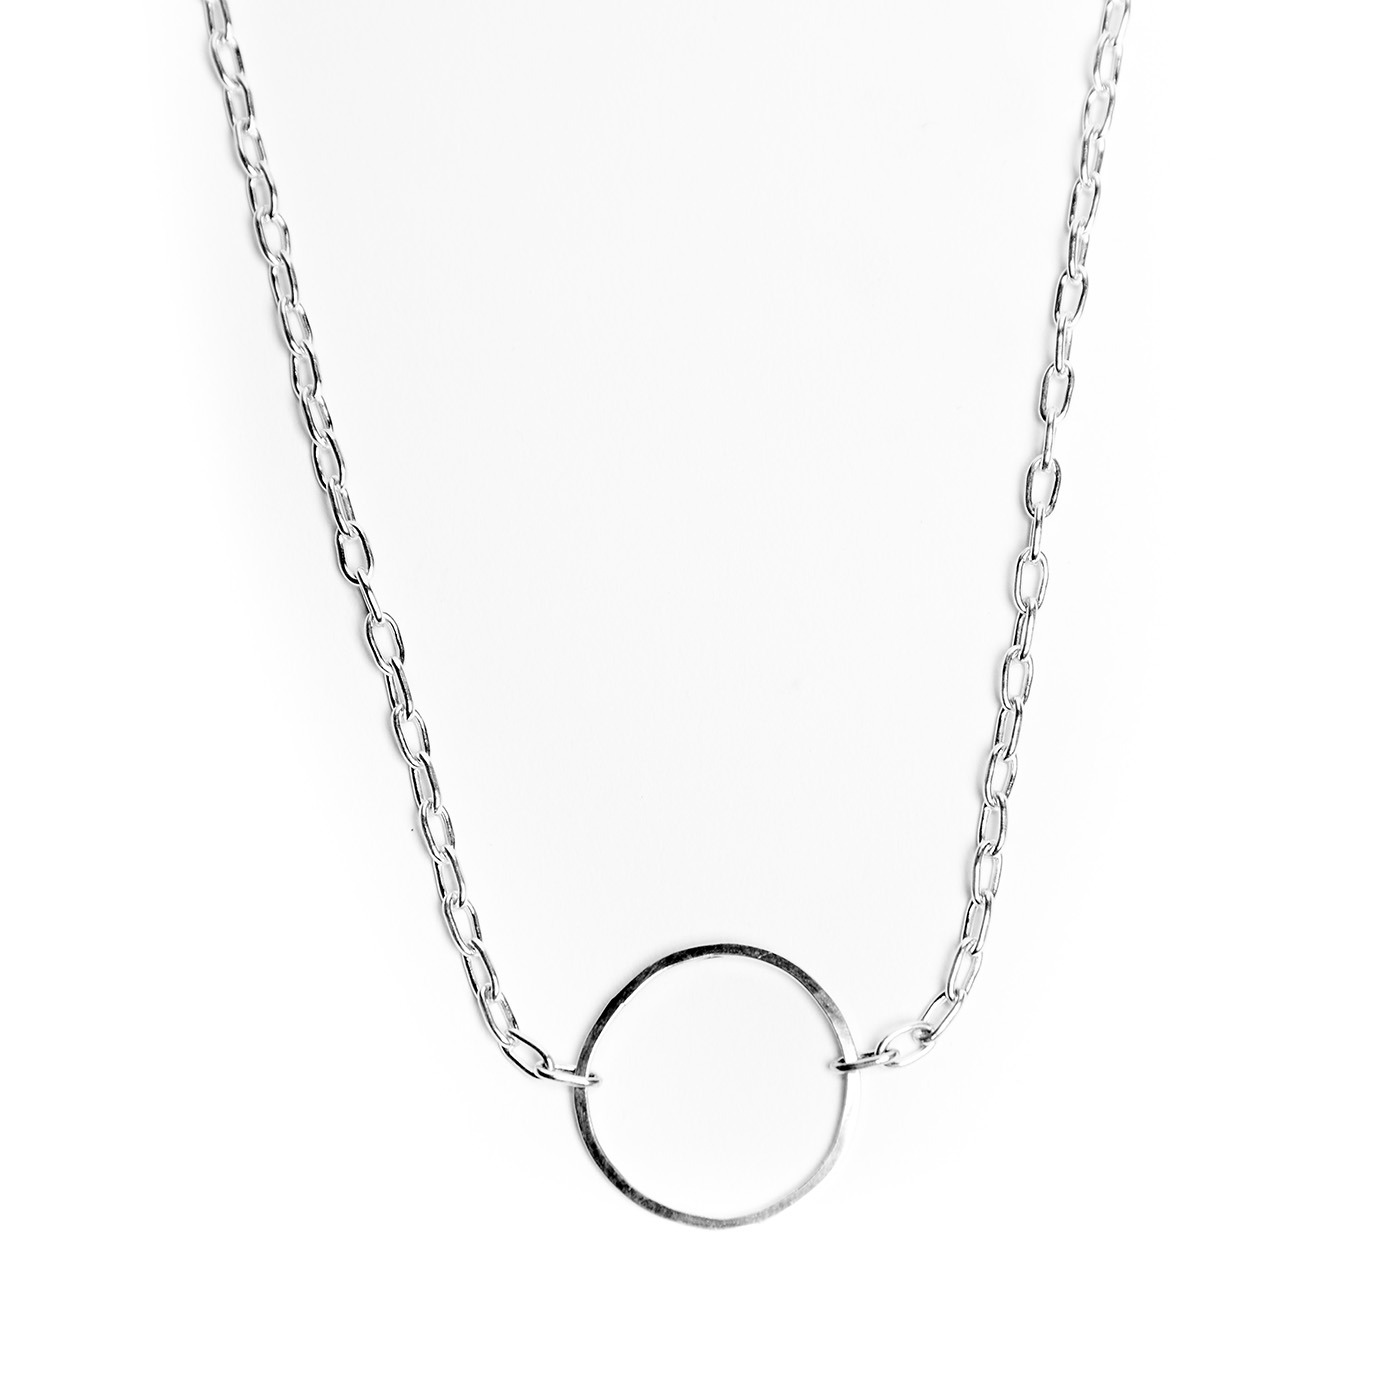 Artisan, Eco-Friendly, Designer Circle of One Necklace